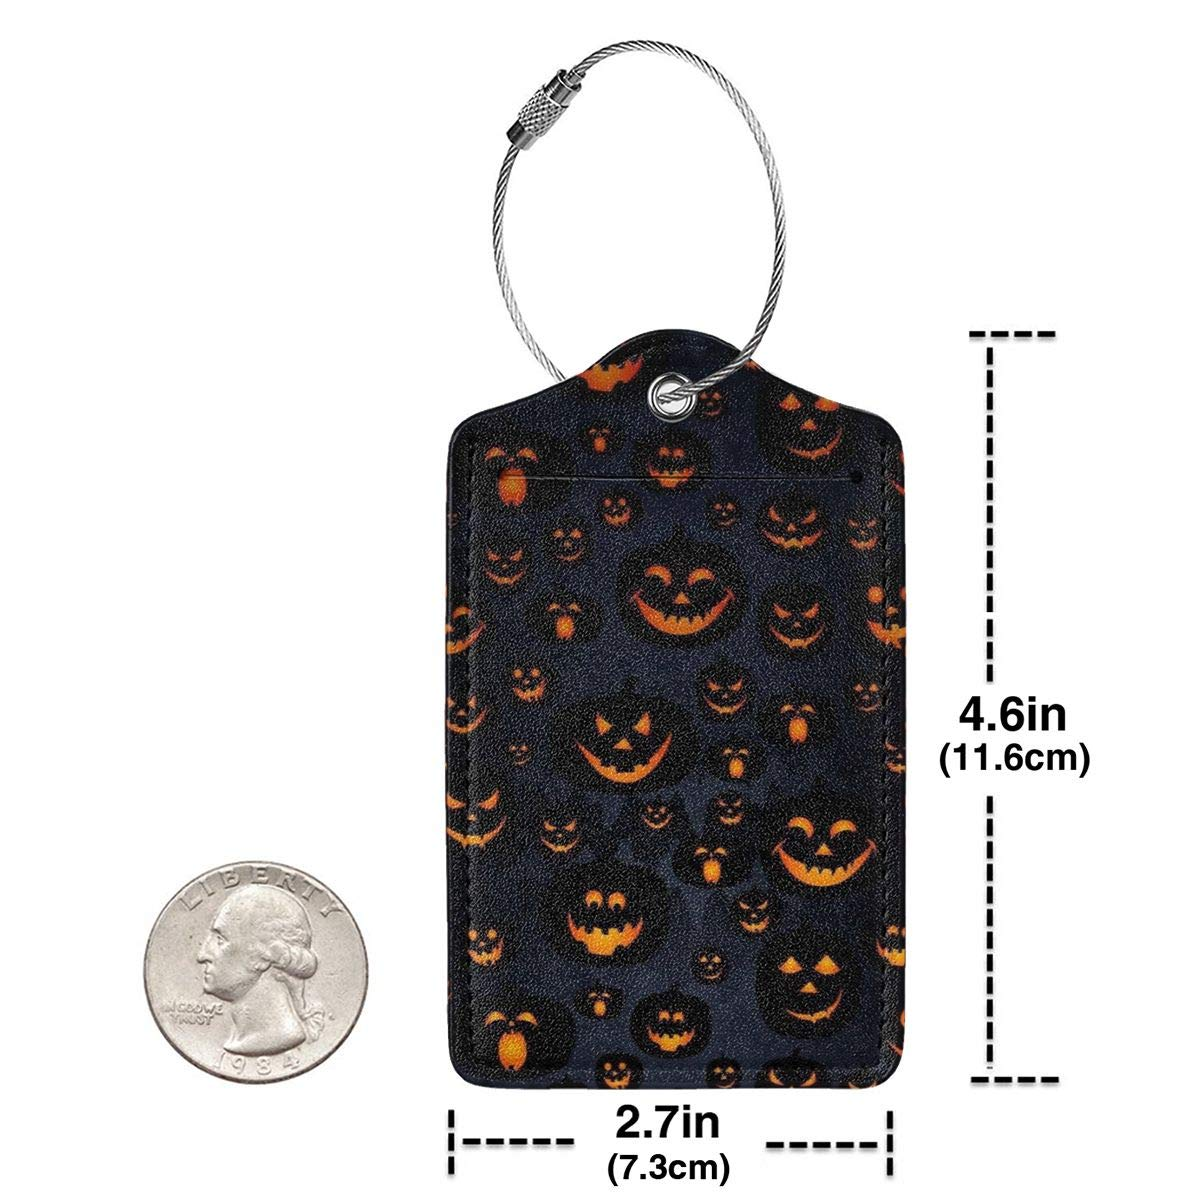 Key Tags for Christmas Birthday Couples Gift Leather Luggage Tags Full Privacy Cover and Stainless Steel Loop 1 2 4 Pcs Set Halloween Pumpkin Skull Patterns 2.7 x 4.6 Blank Tag